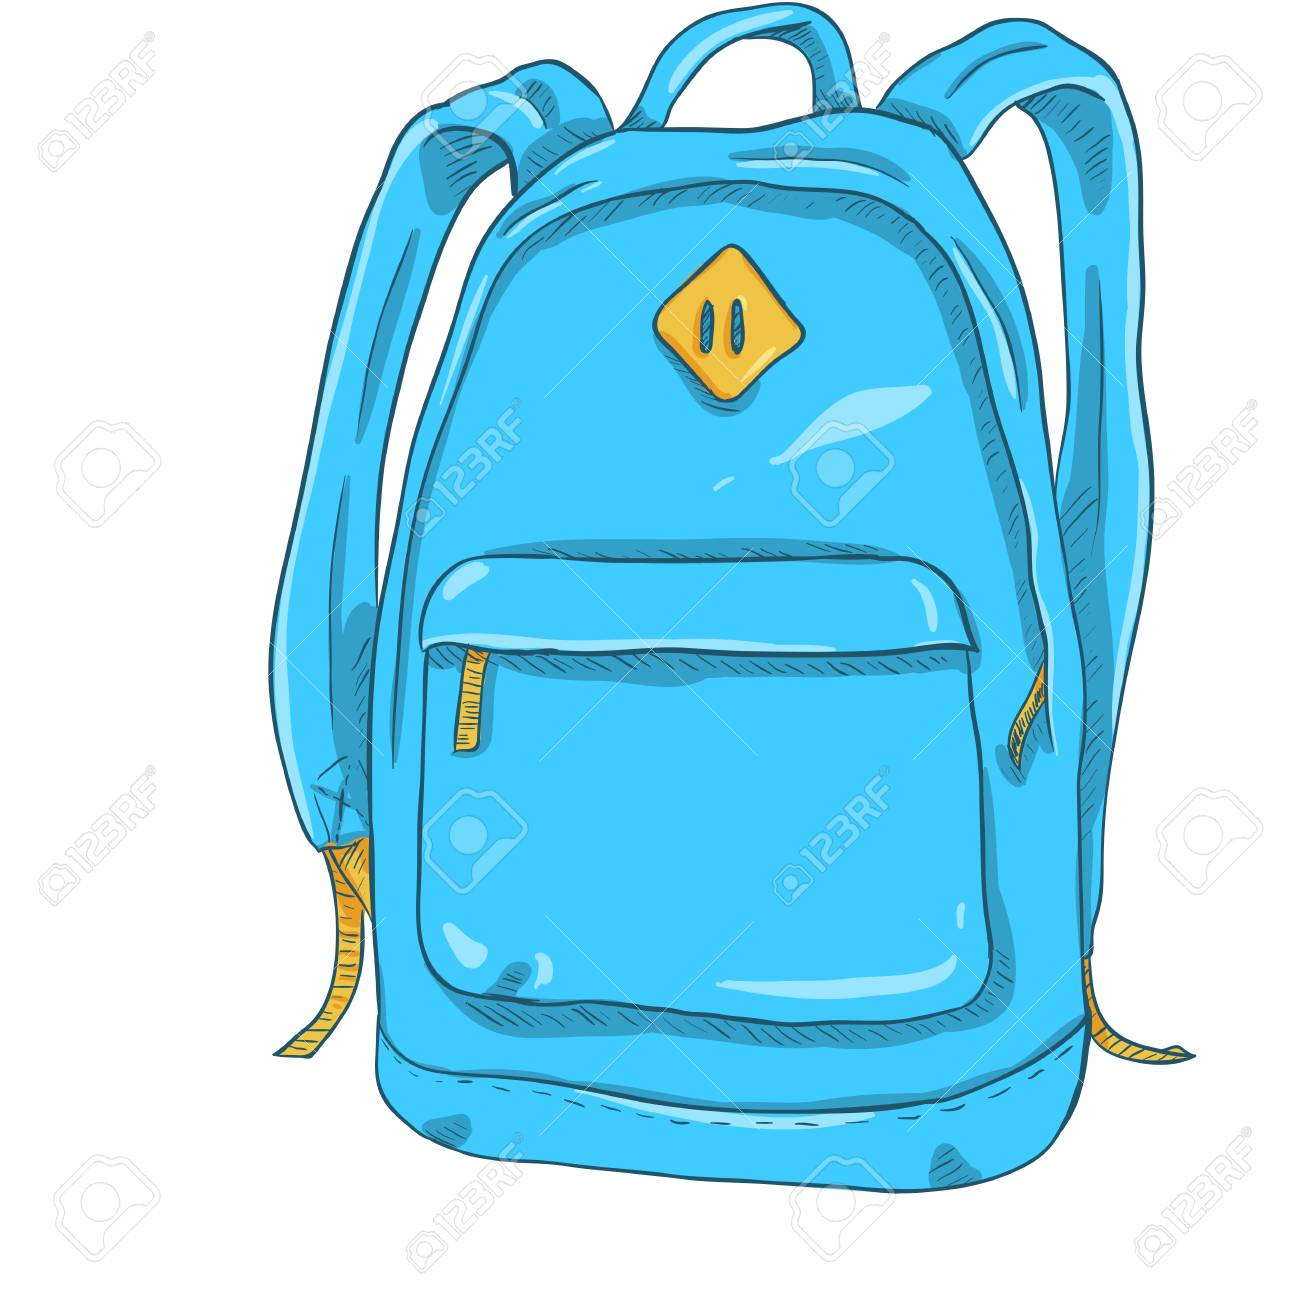 Vector Single Cartoon Blue And Yellow Casual Urban Style Backpack Royalty Free Cliparts Vectors And Stock Illustration Image 72687551